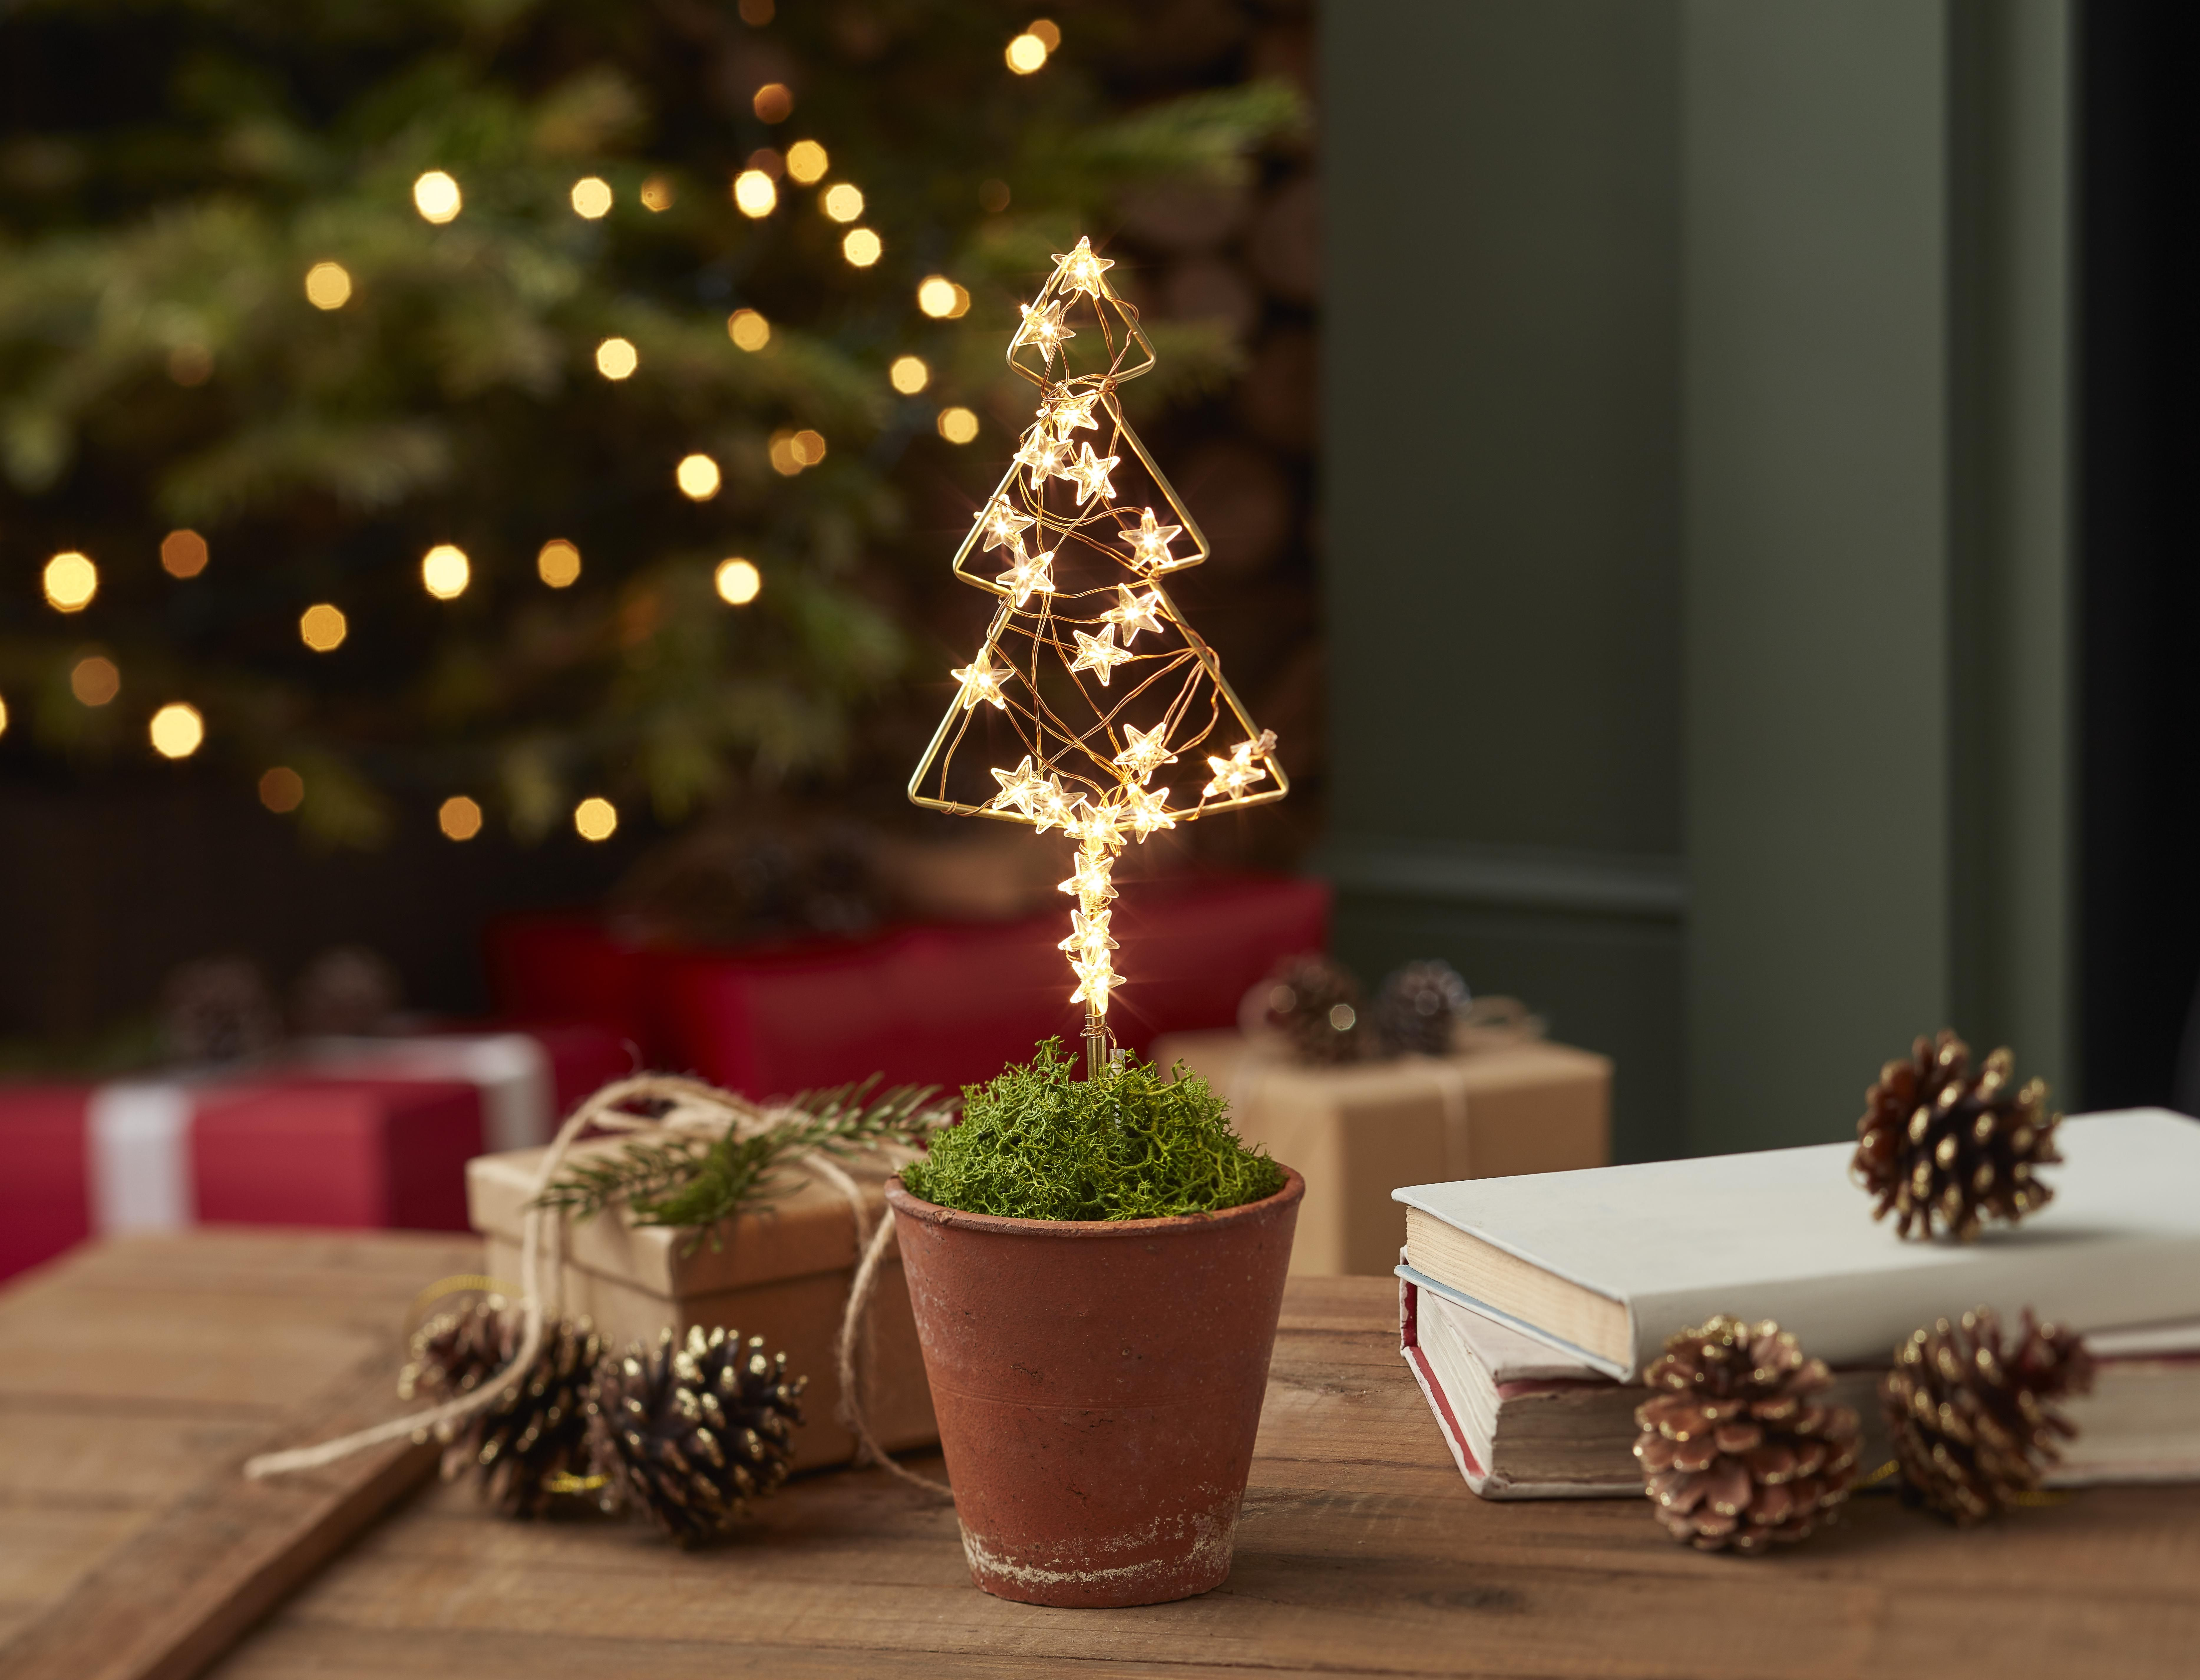 All We Want Need For Christmas Is This Cute Led Light Up Christmas Tree Standing Proud In It S Own Little Plant P Christmas Light Decorations Christmas Tree